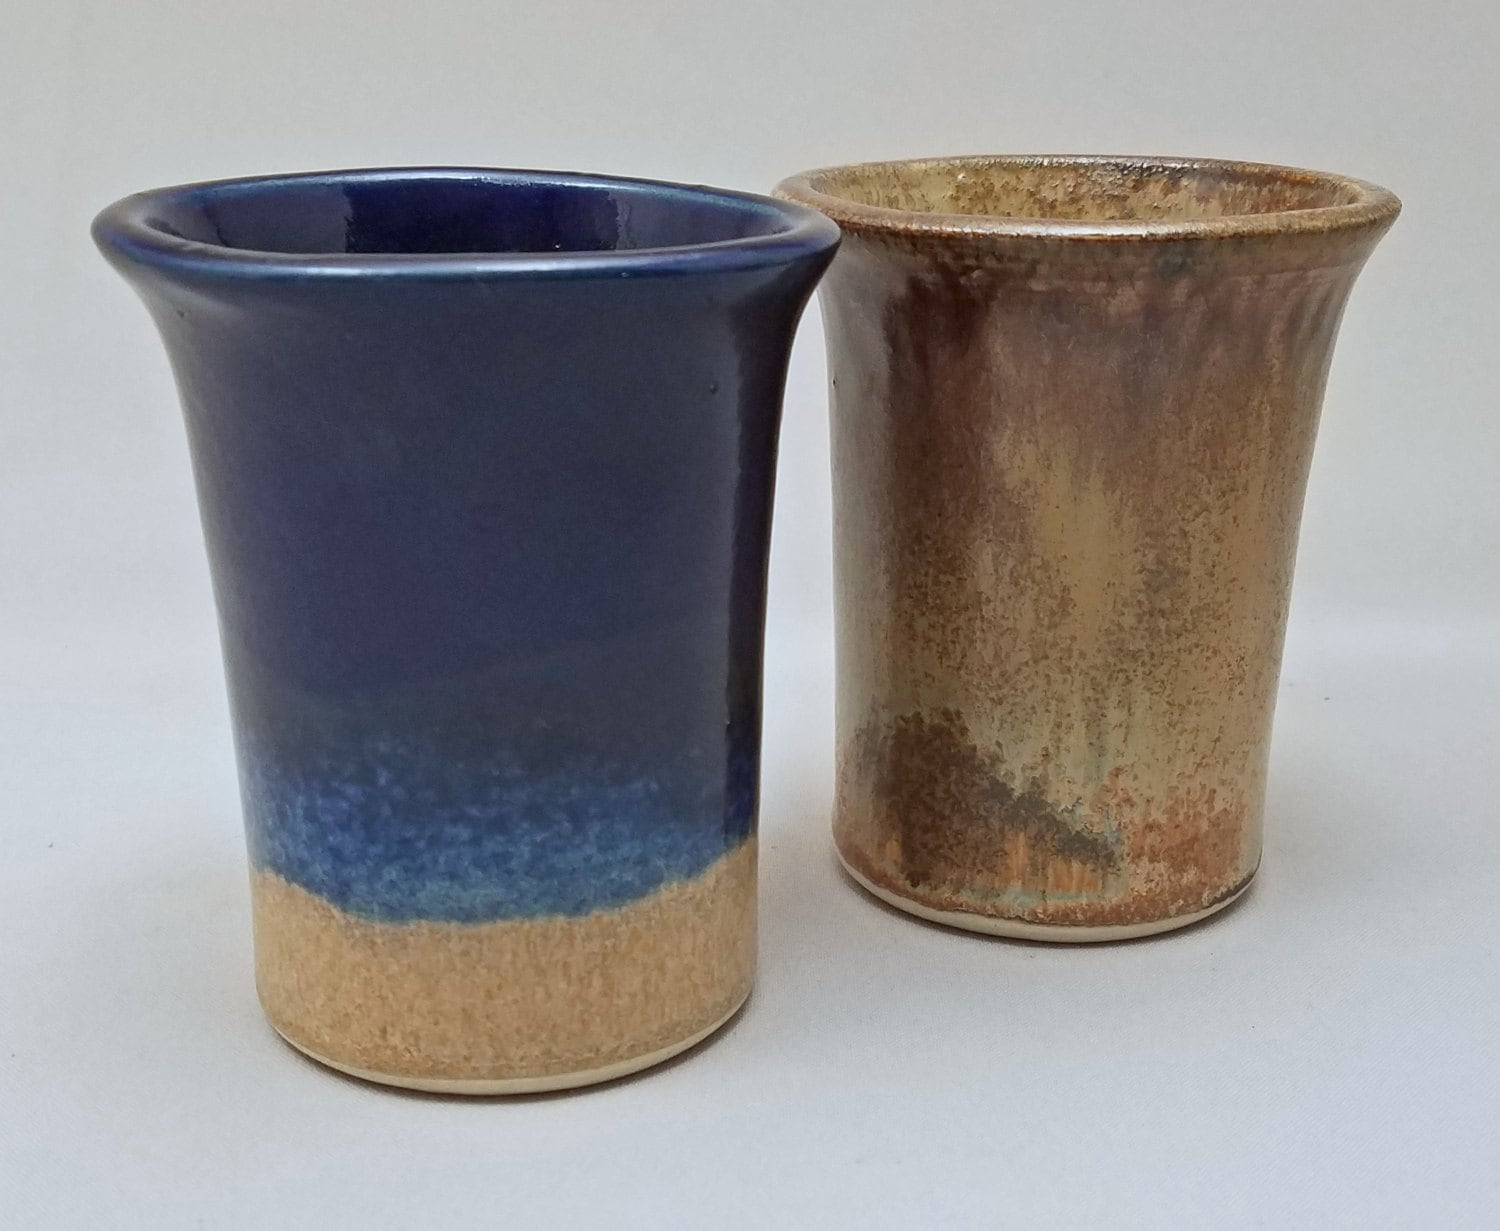 Bathroom tumbler cup by stegall 39 s pottery for Bathroom tumbler